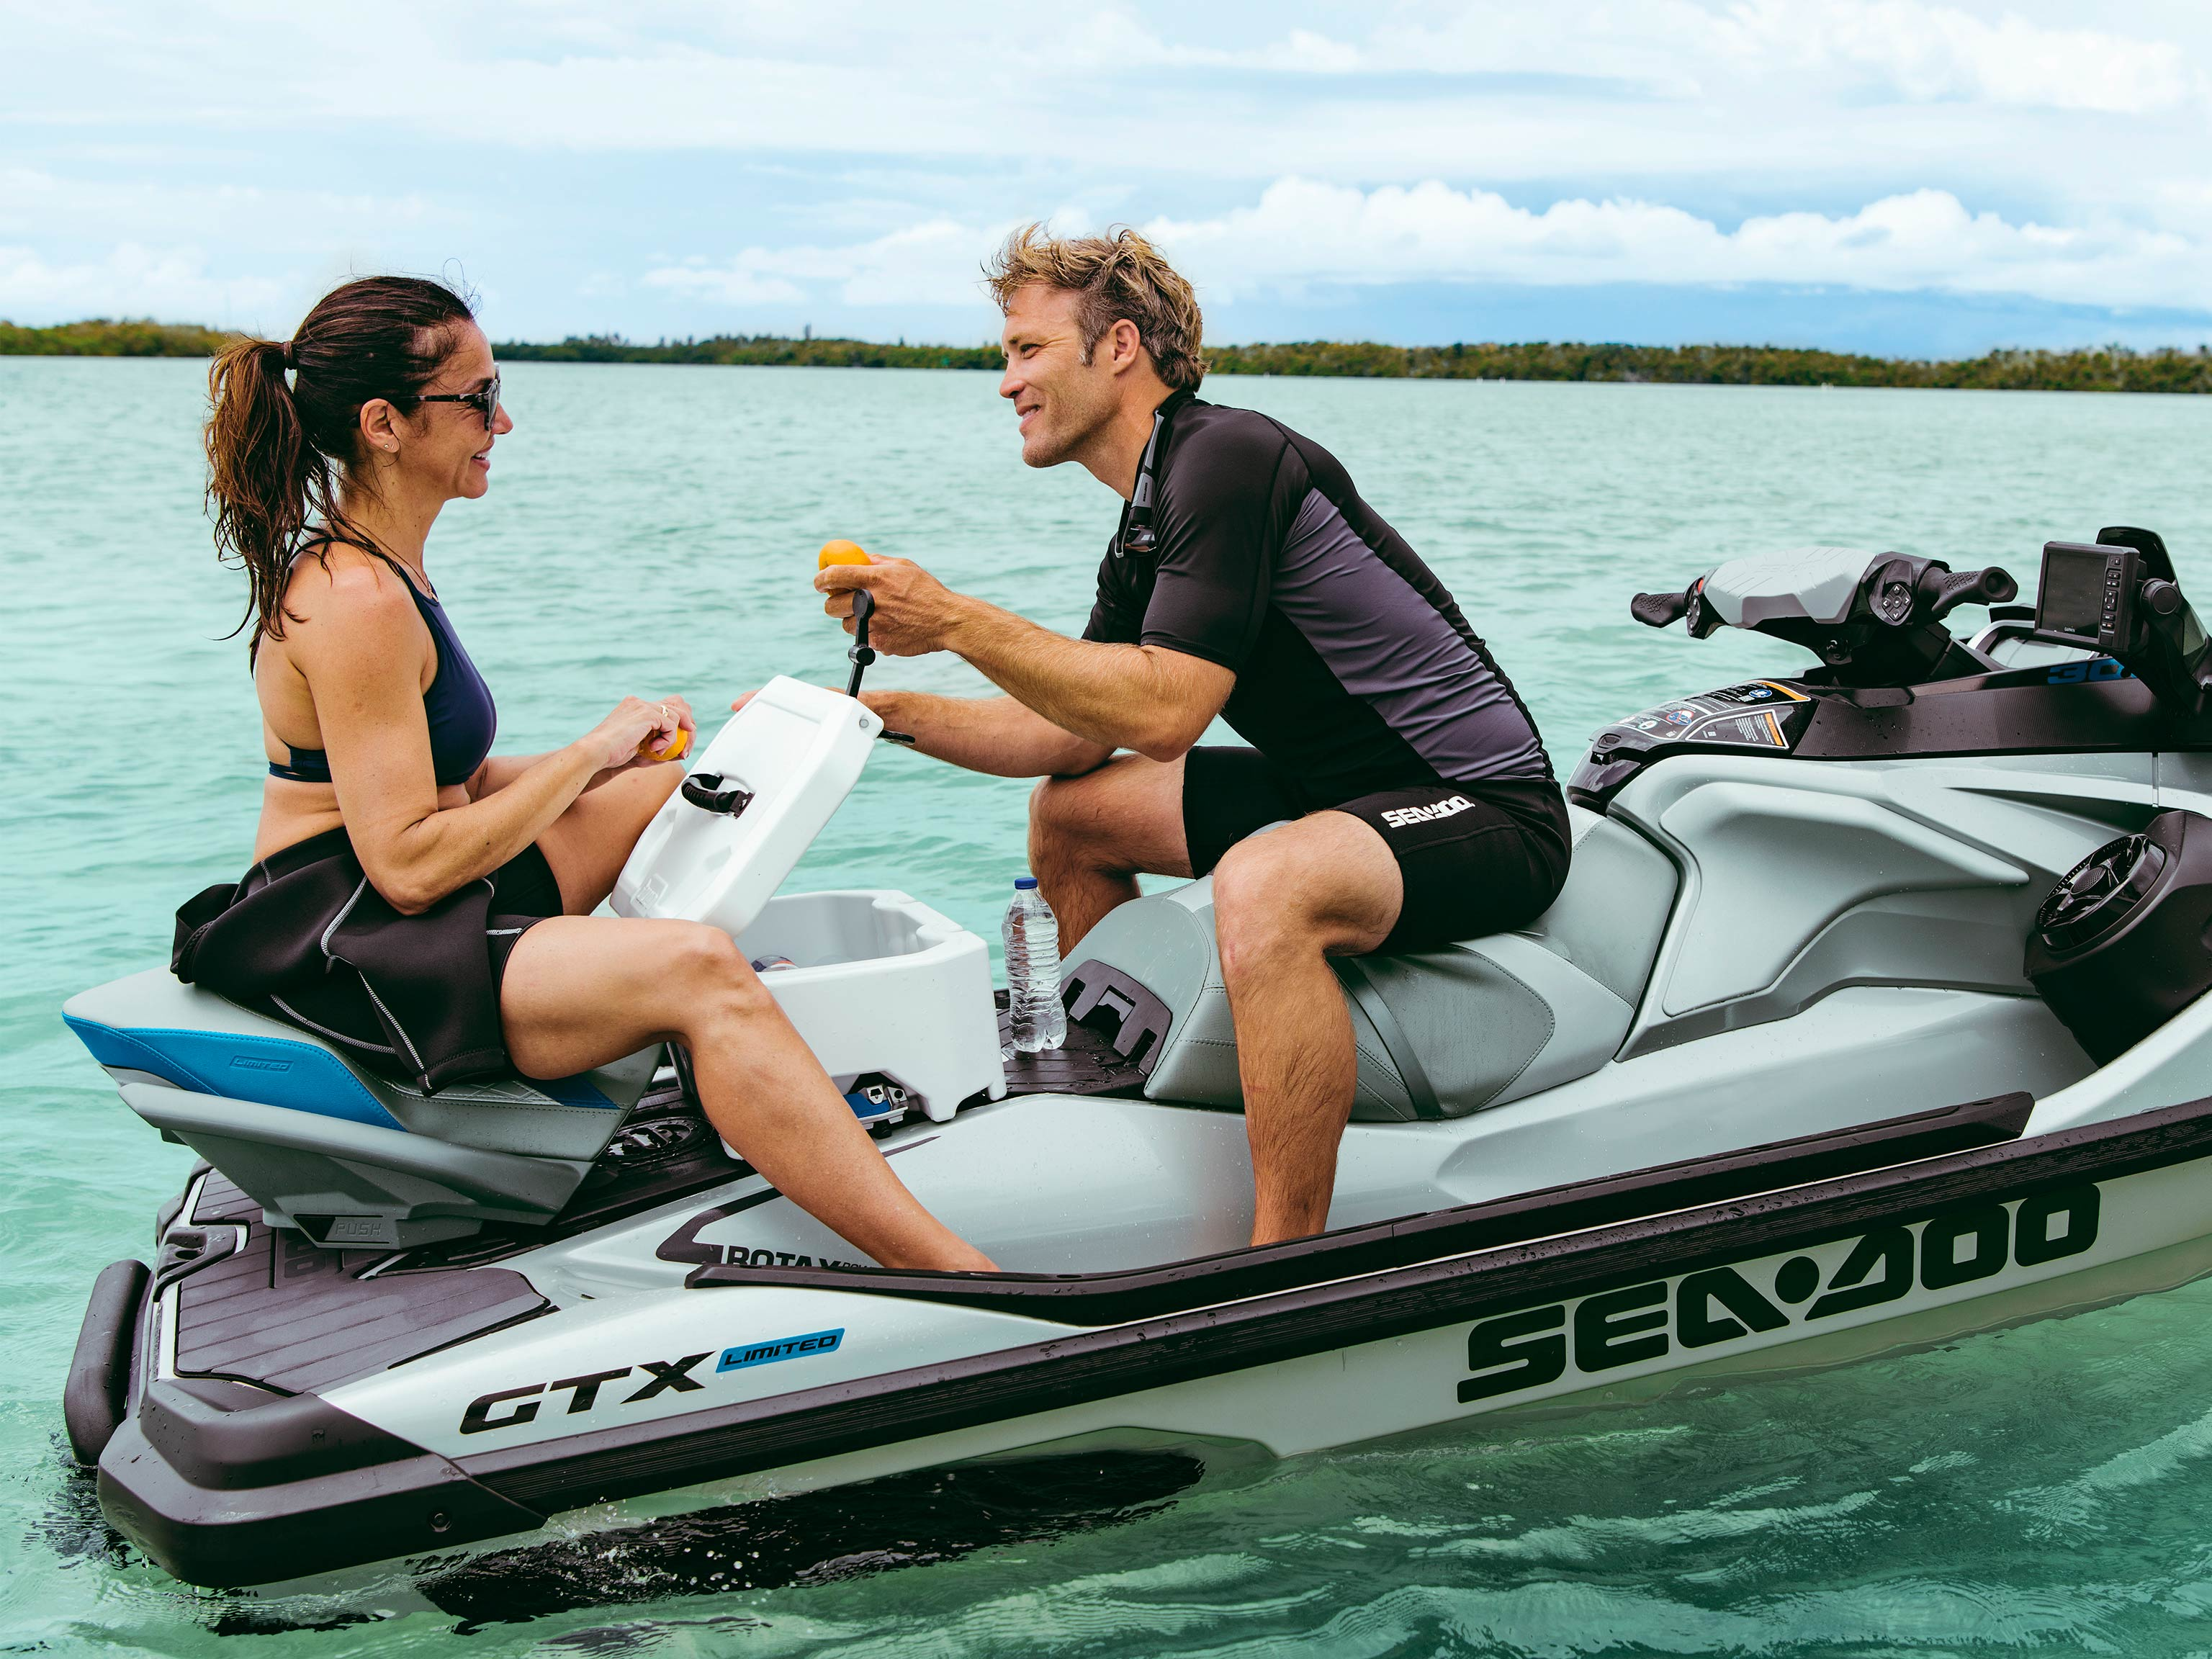 Couple sharing an orange on a Sea-Doo GTX